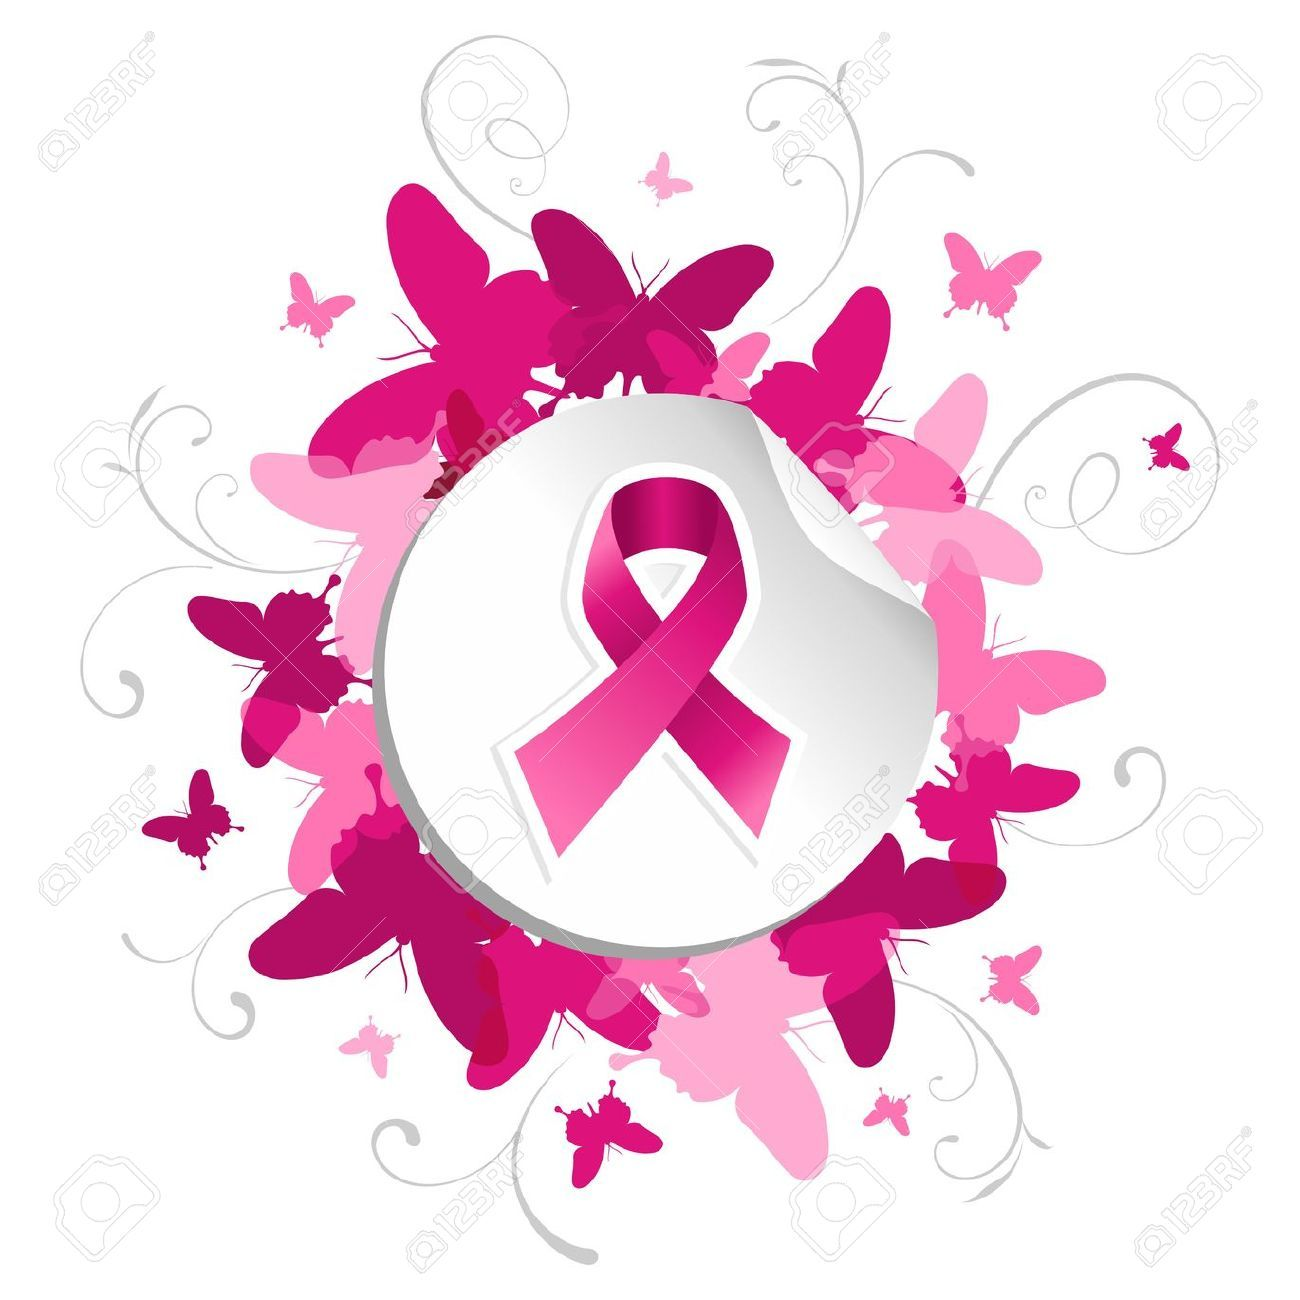 1300x1300 Breast Cancer Awareness Pink Ribbon In Sticker Over Spring